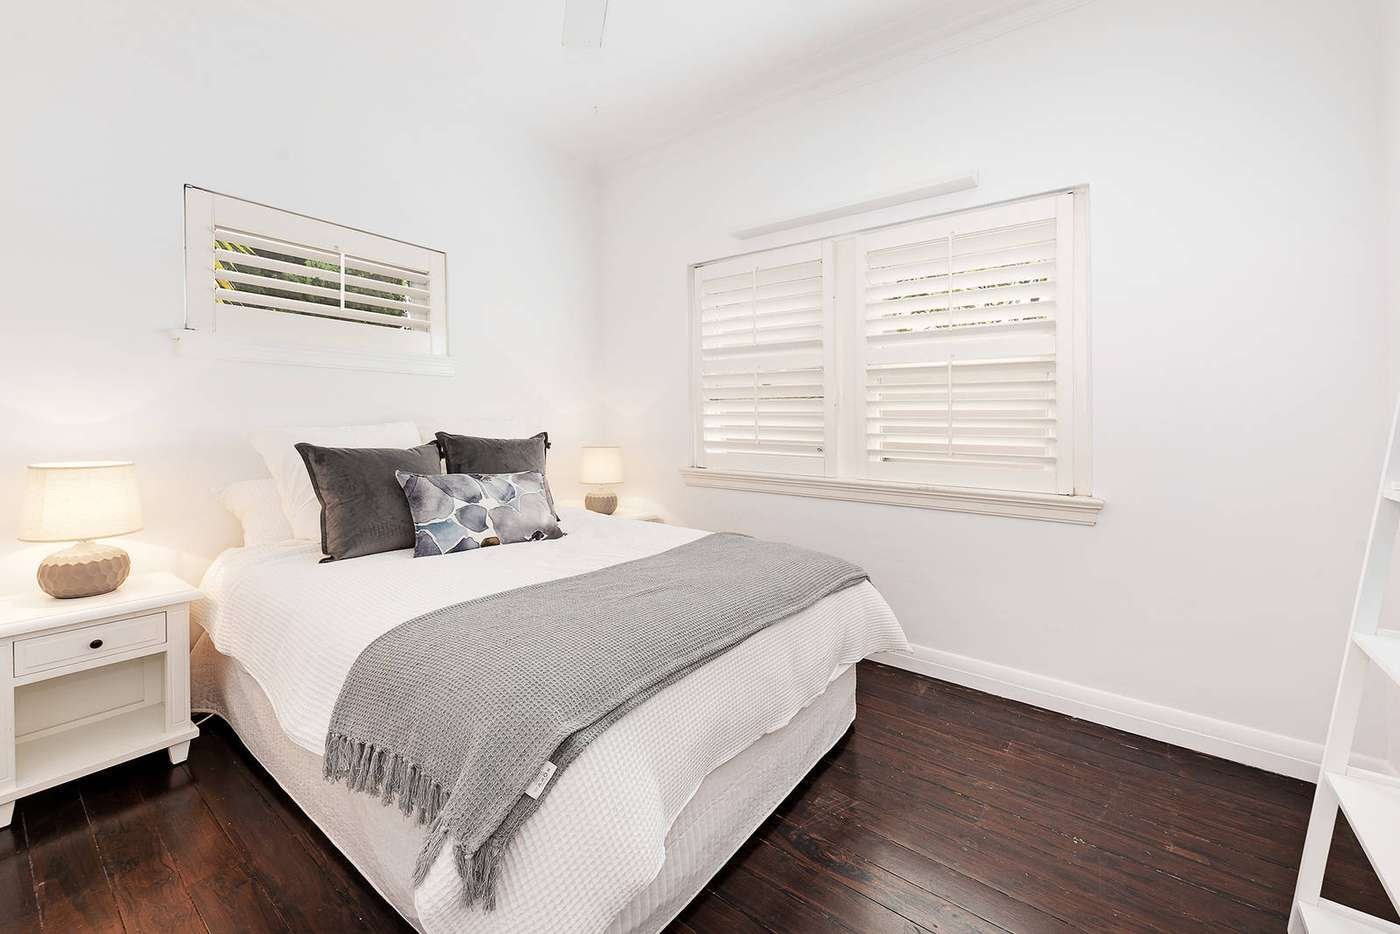 Sixth view of Homely house listing, 14 Charles Street, Castlecrag NSW 2068